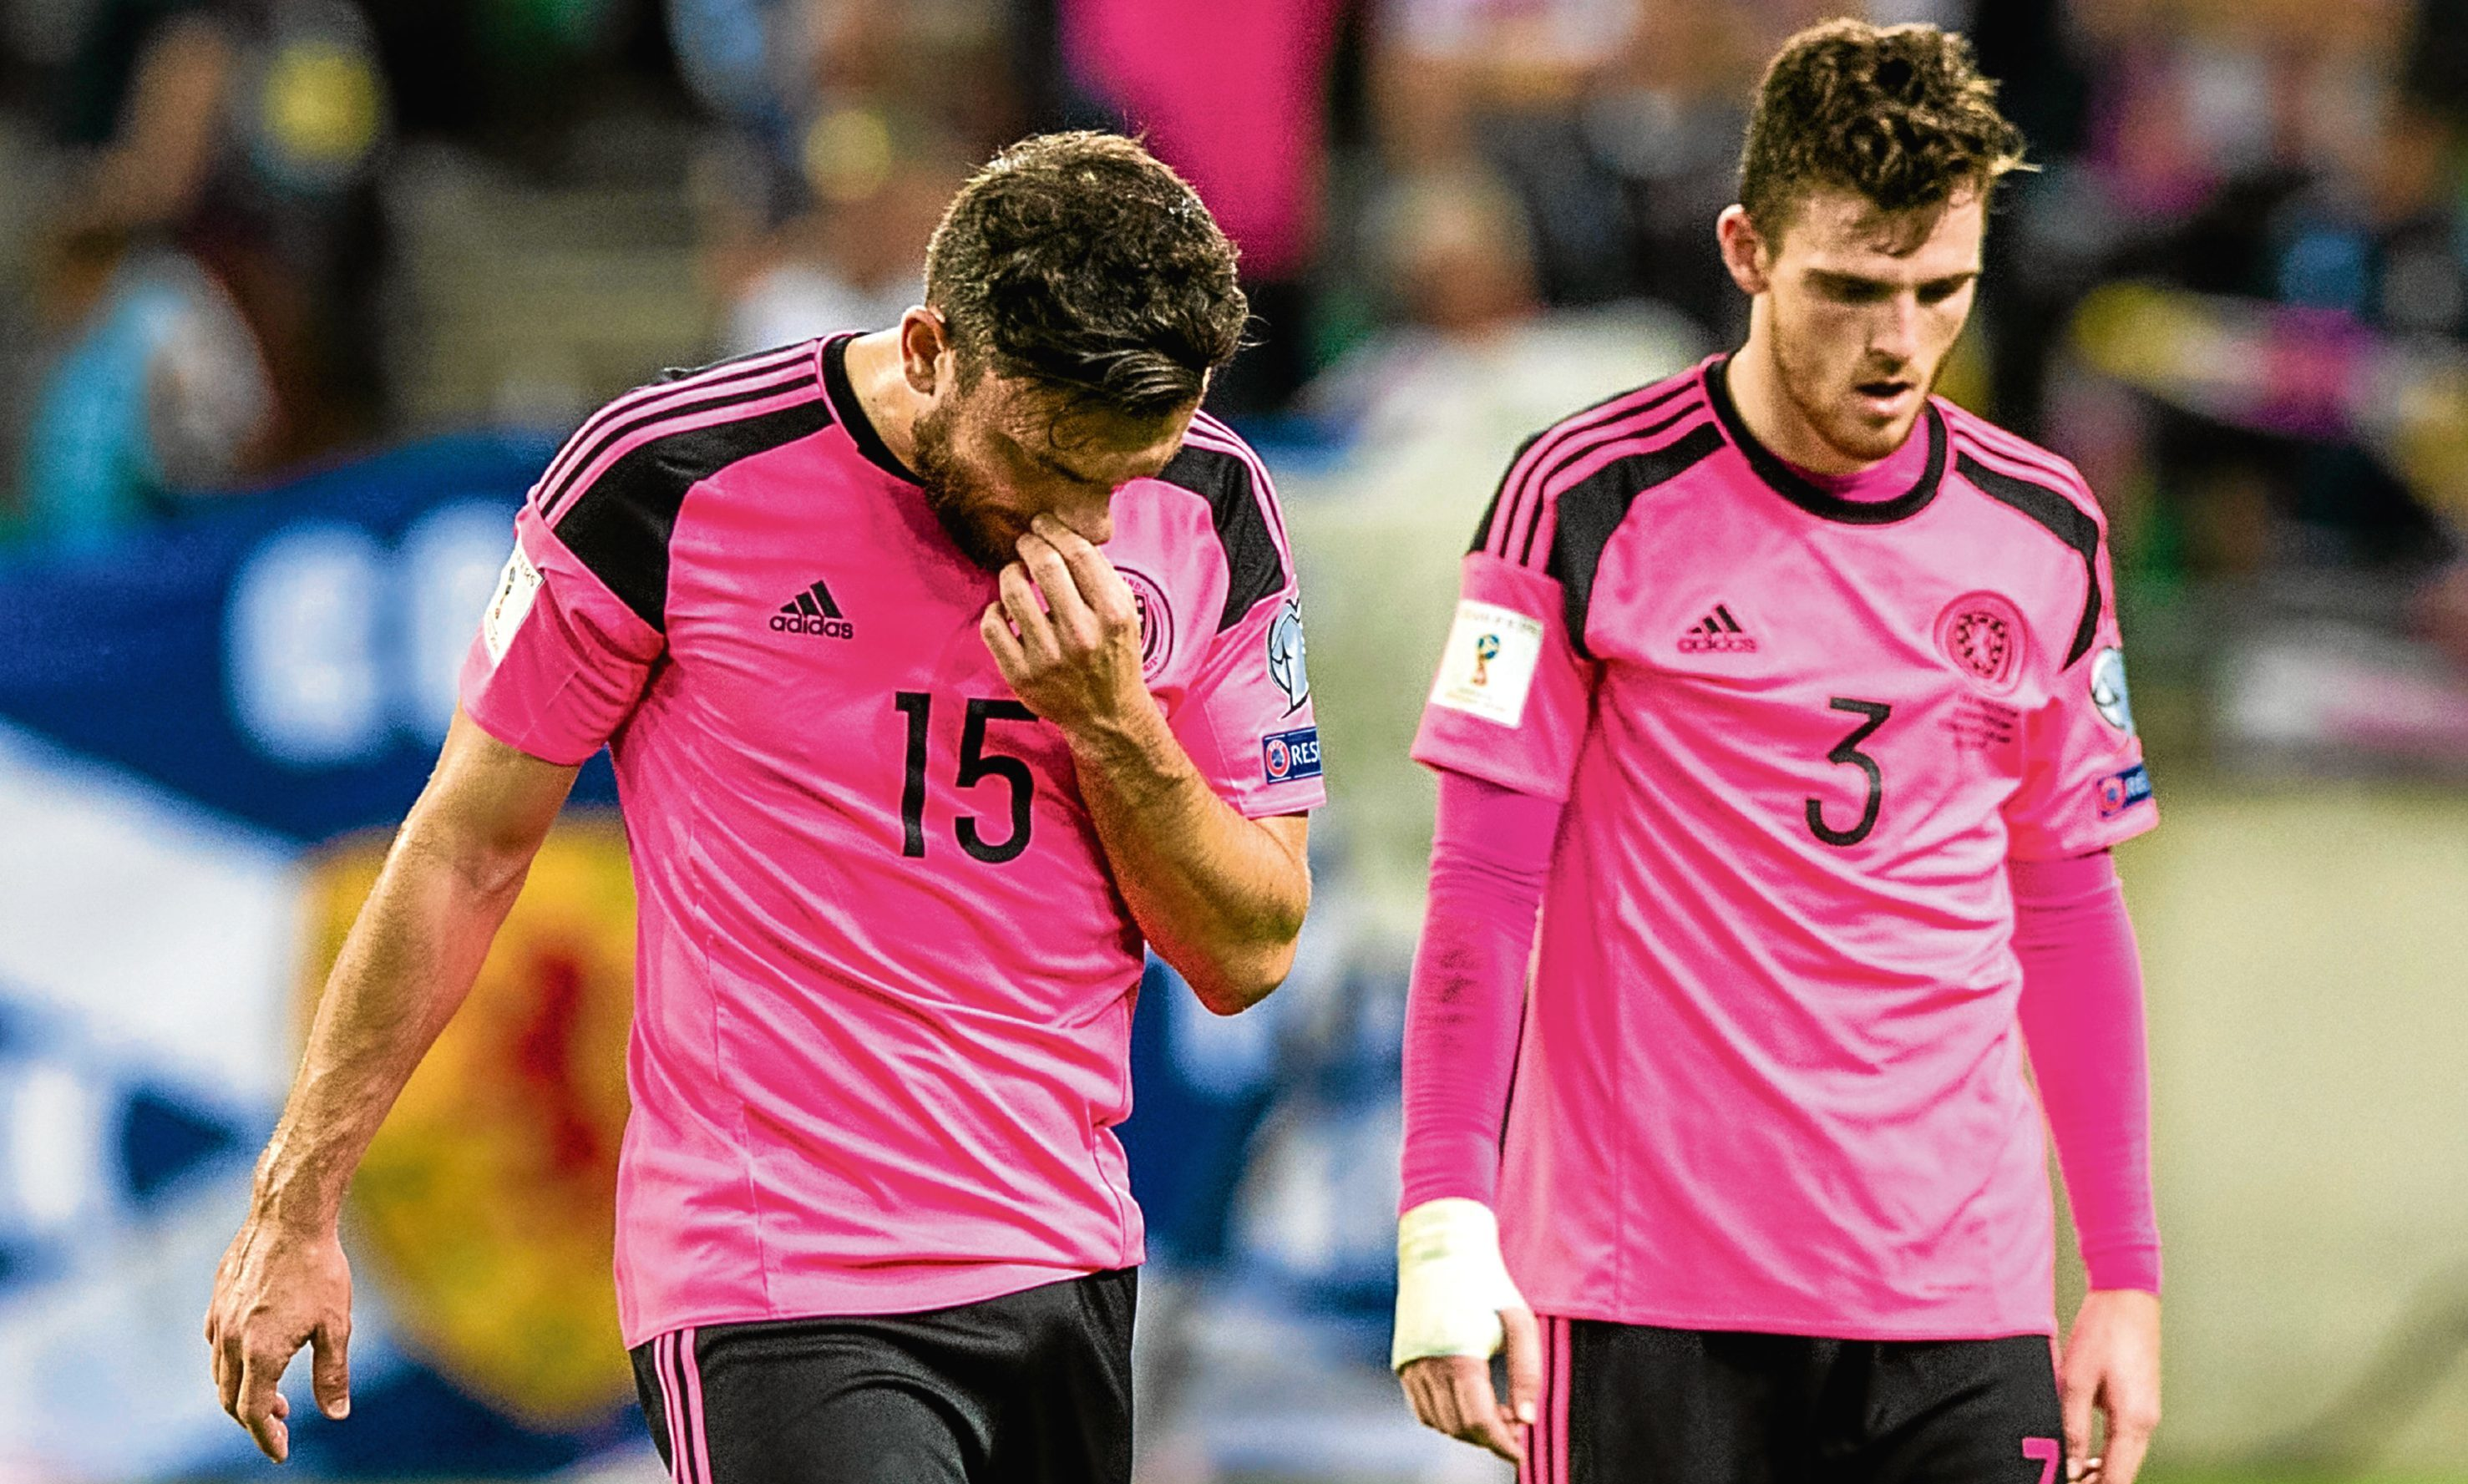 Dejection for Scotland's Robert Snodgrass and Andrew Robertson at full-time.